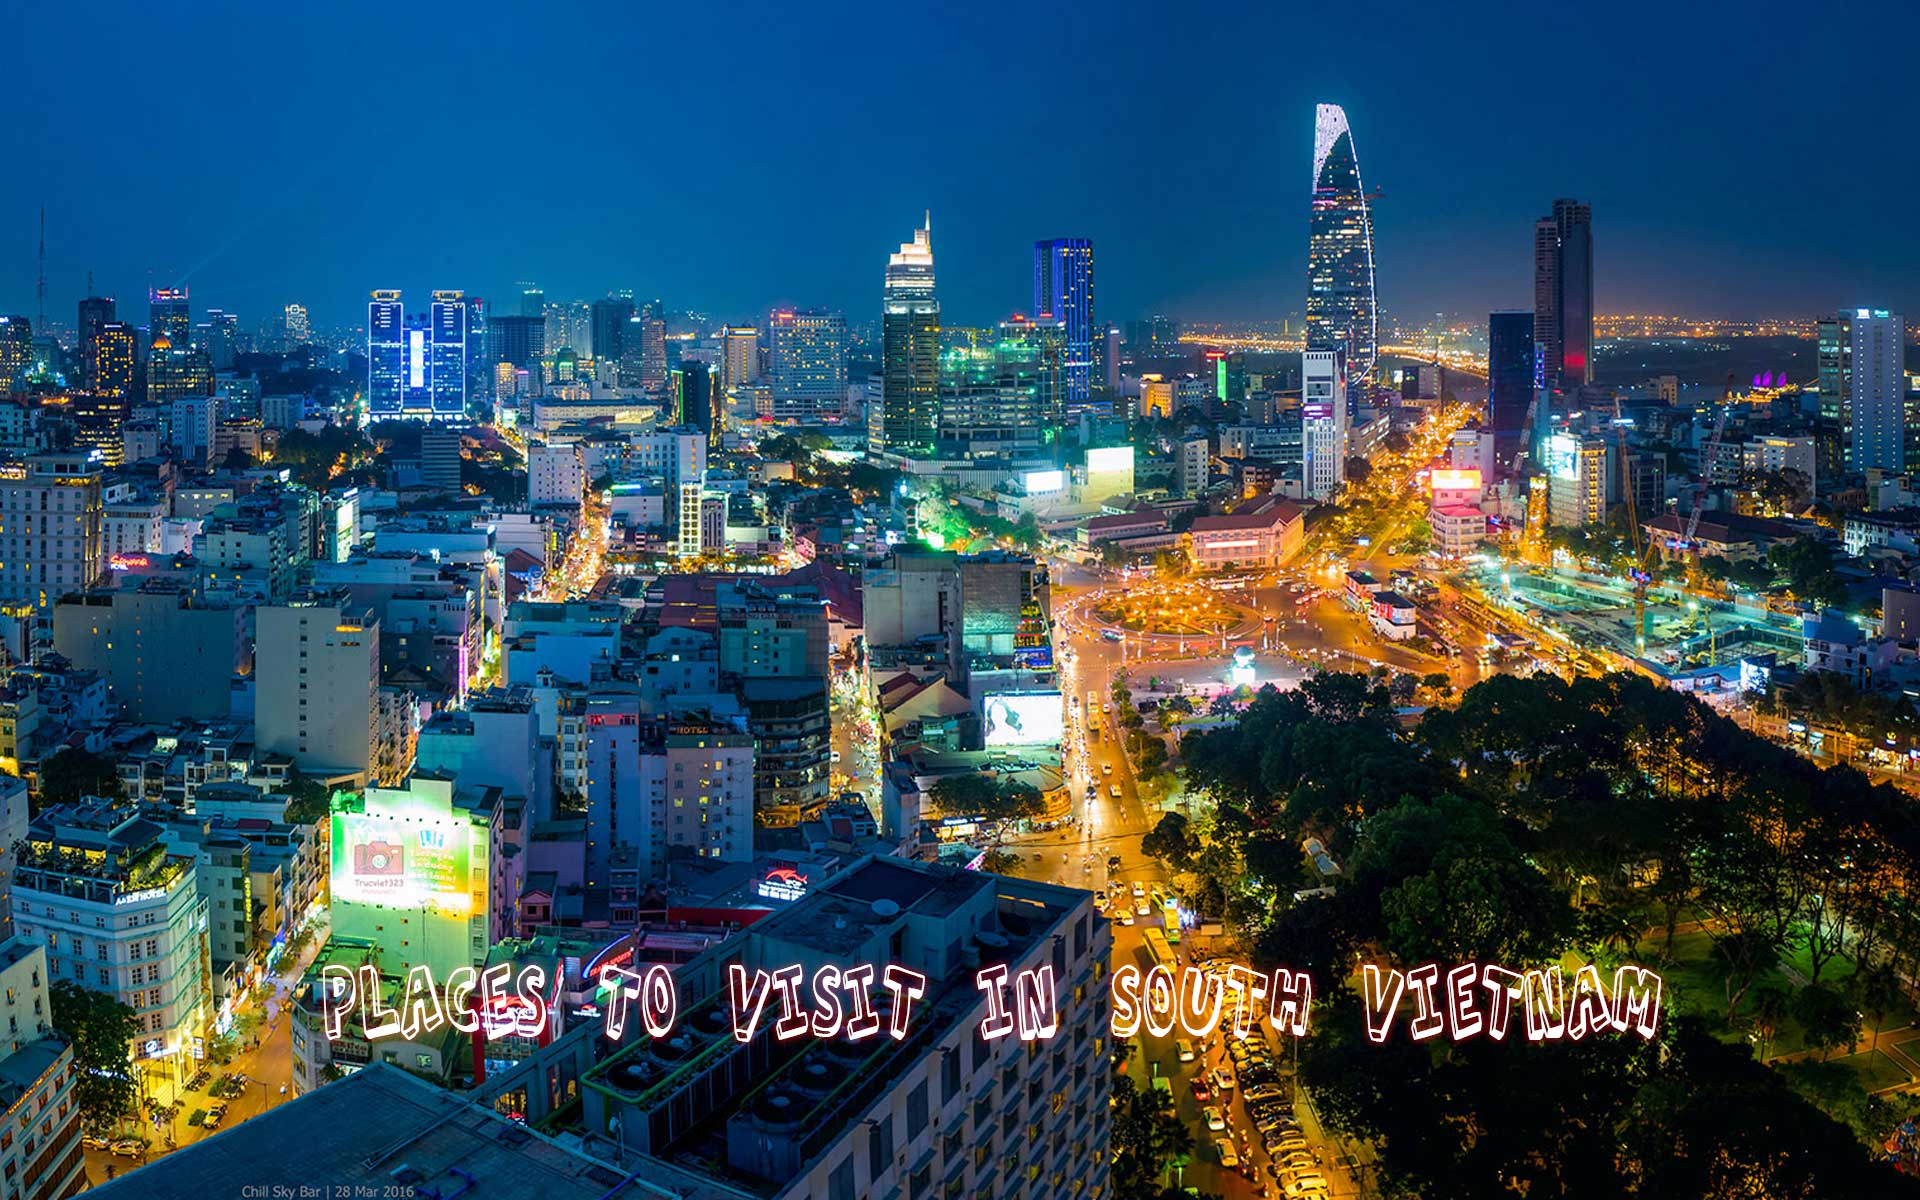 Places to visit in South Vietnam